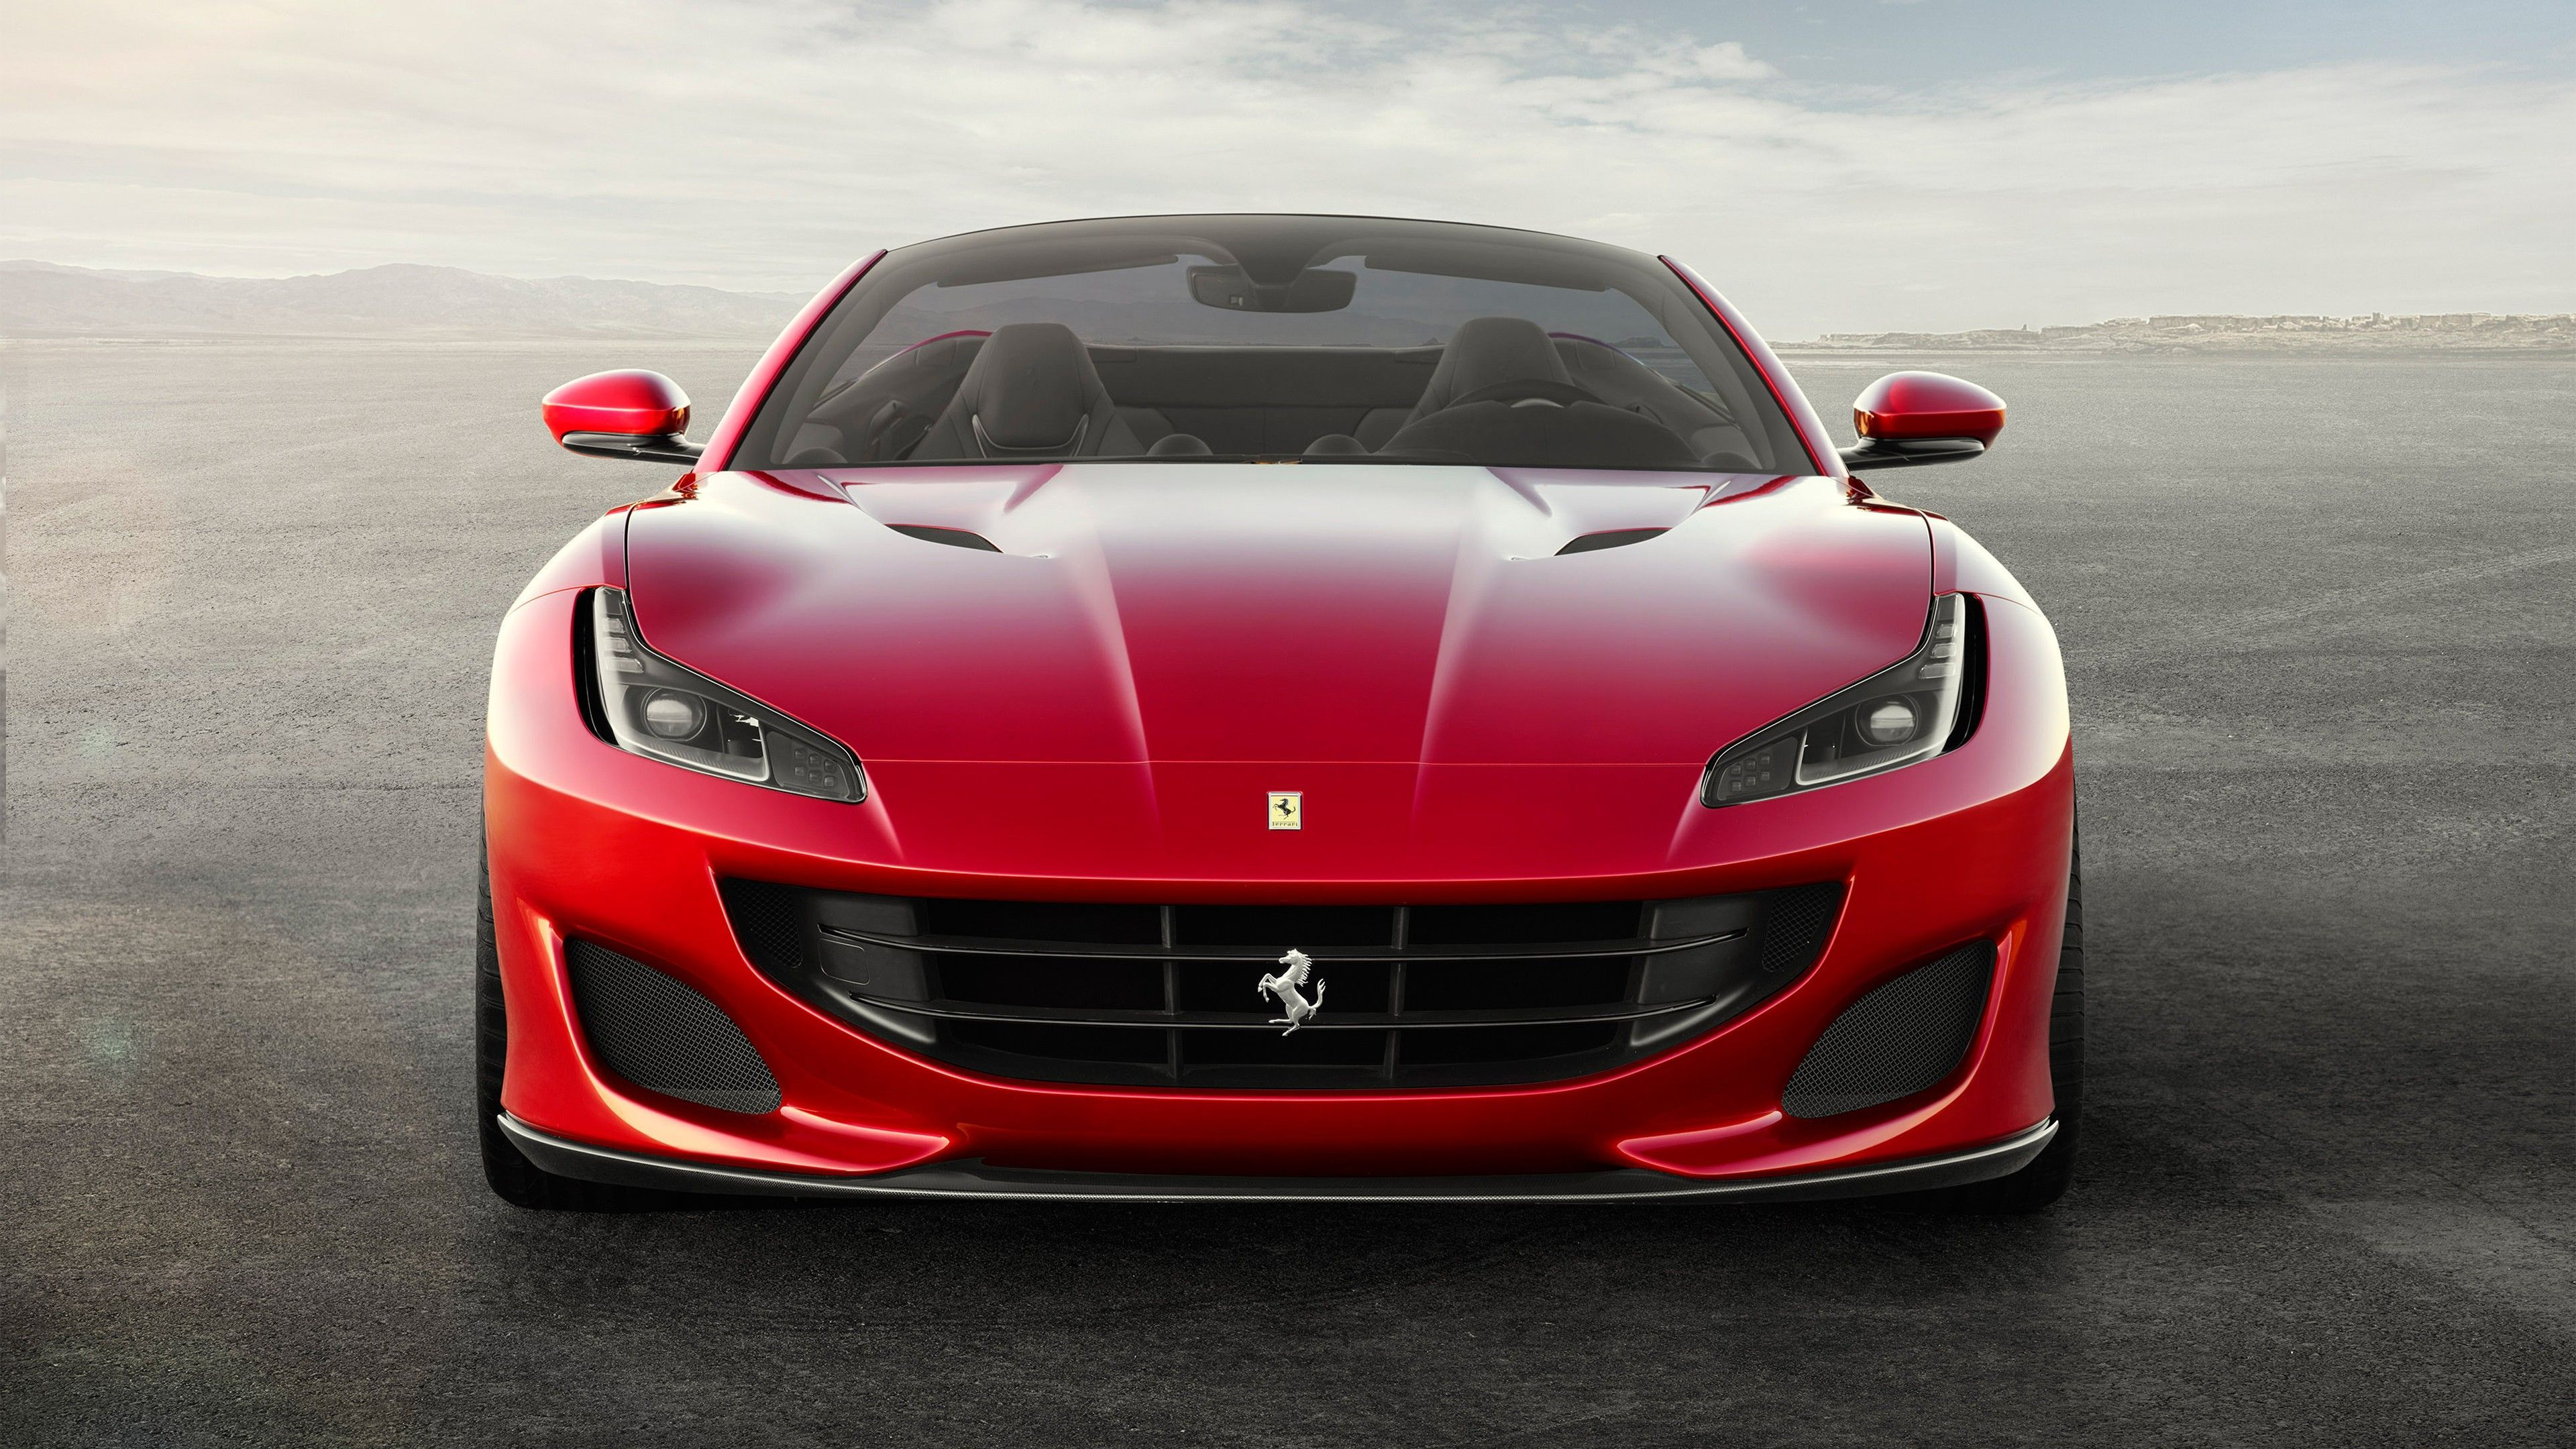 rent exotic italy ferrari rental a cars luxury real car com cockpit day interior in mclaren for